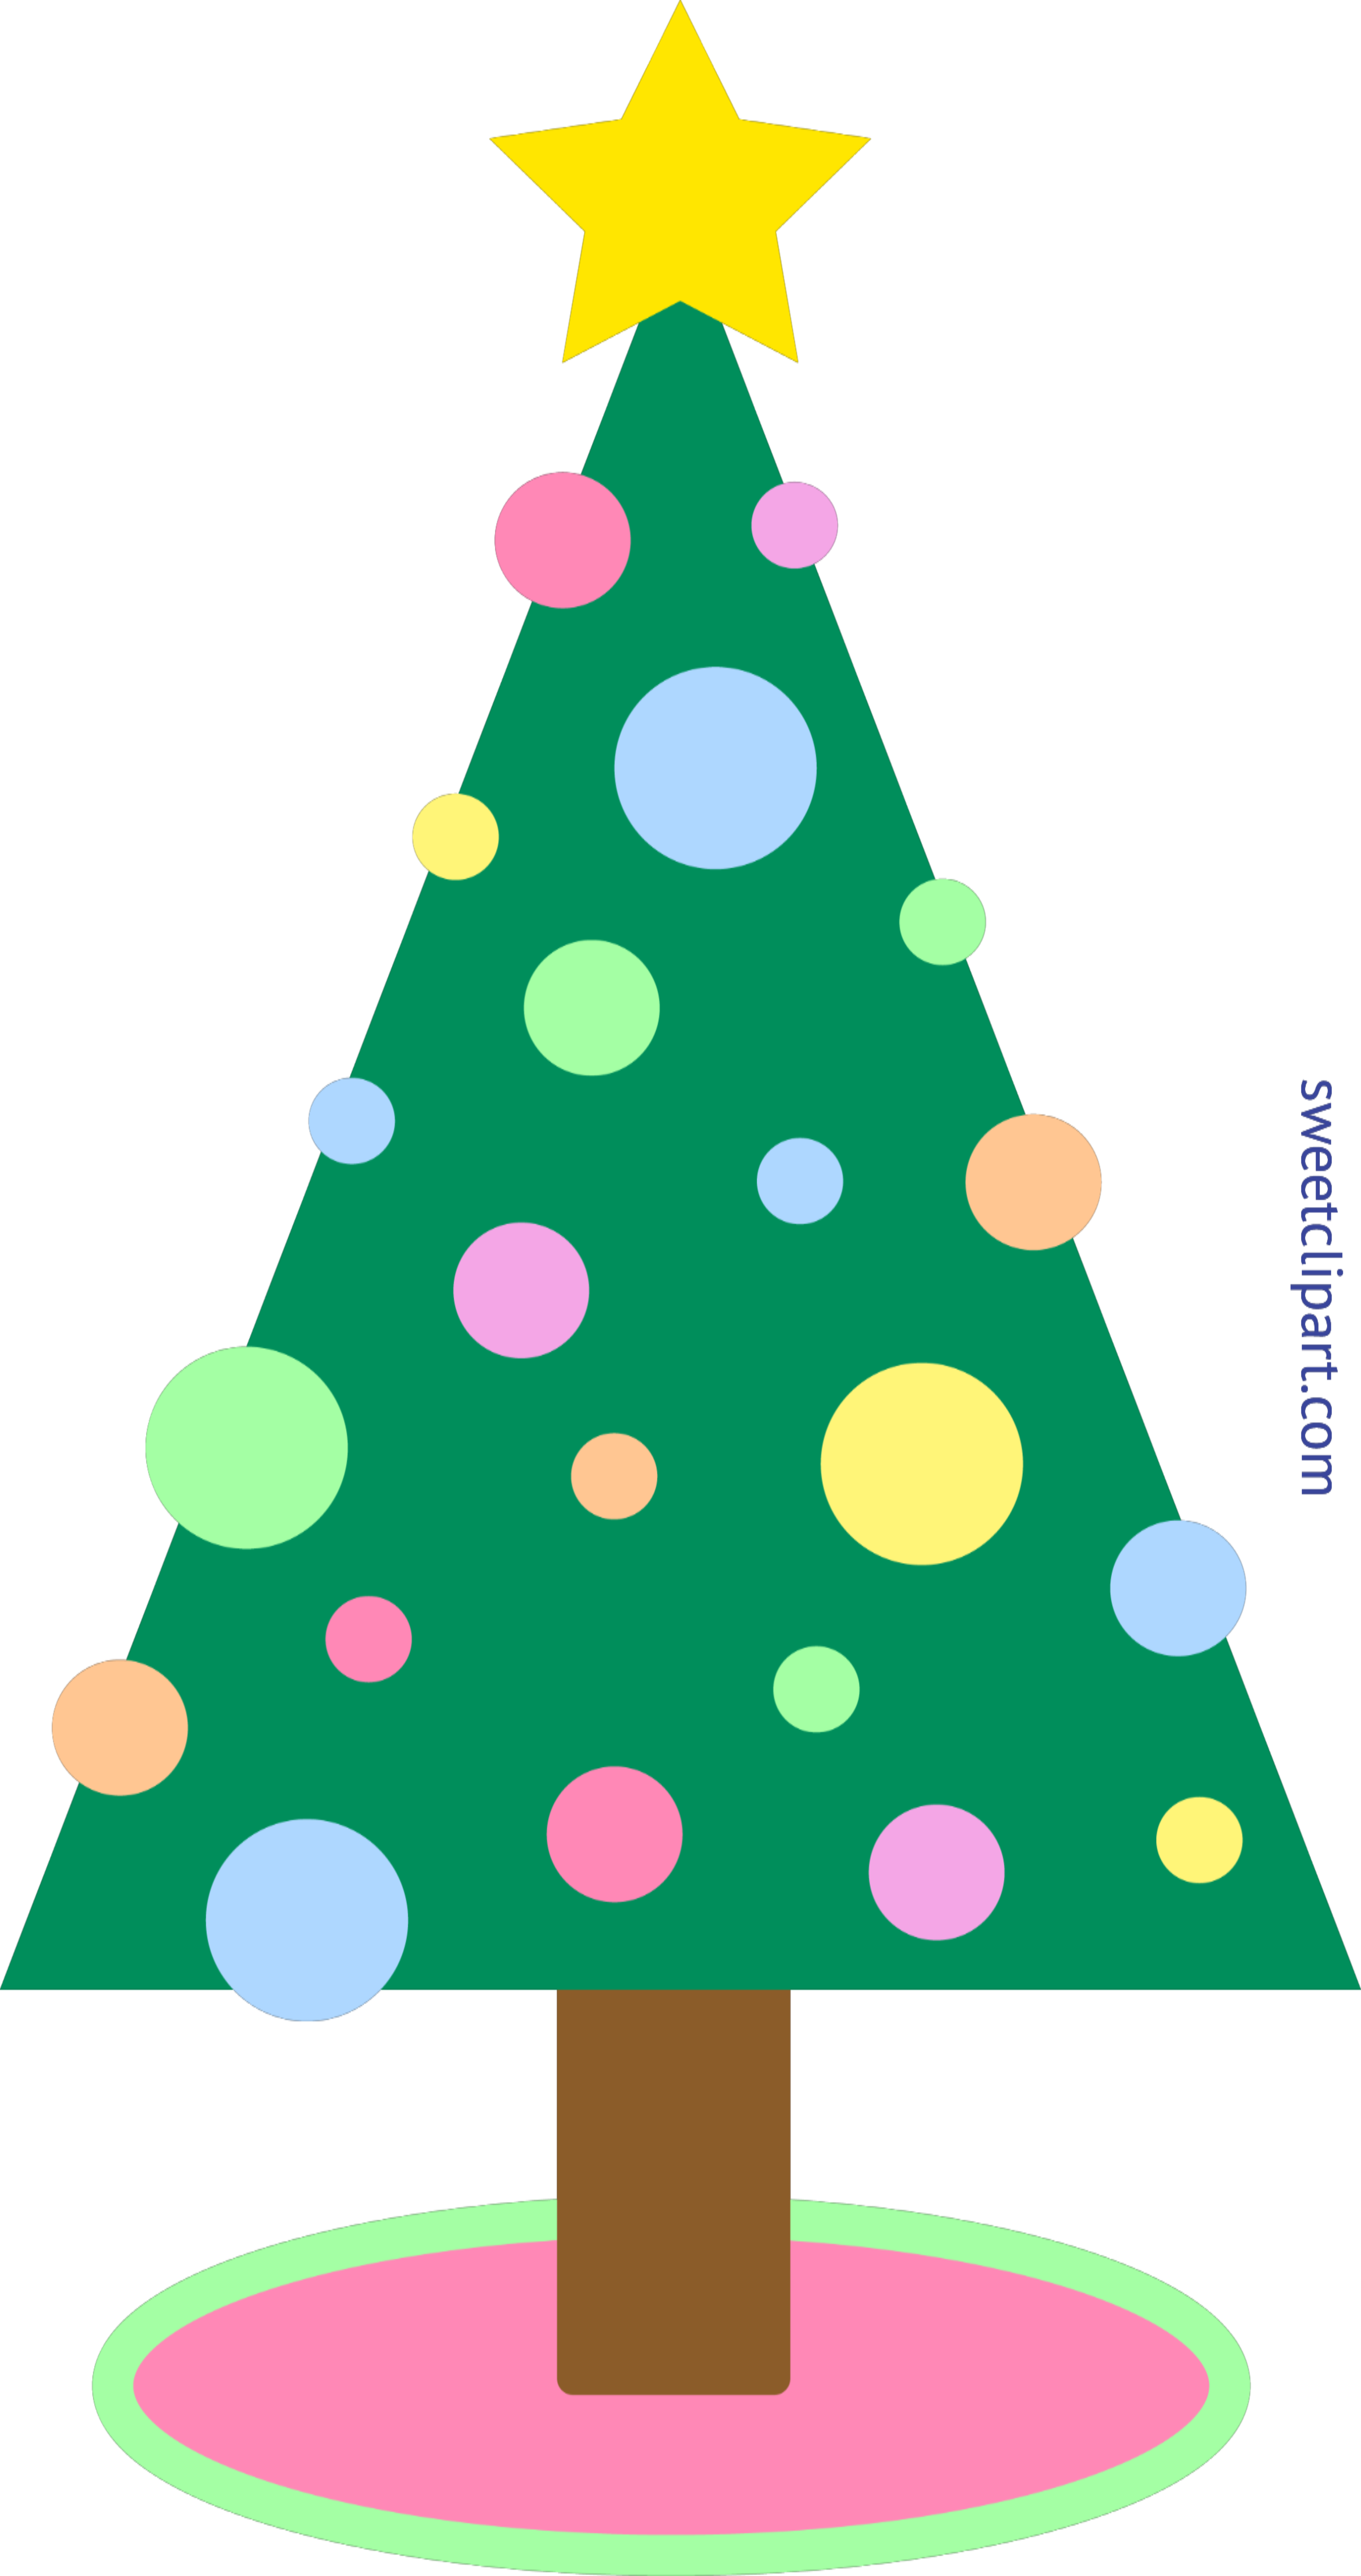 Sweet Clip Art Page 21 Of 63 Cute Free ATM Holidays Christmas Tree Simple Pastel Family